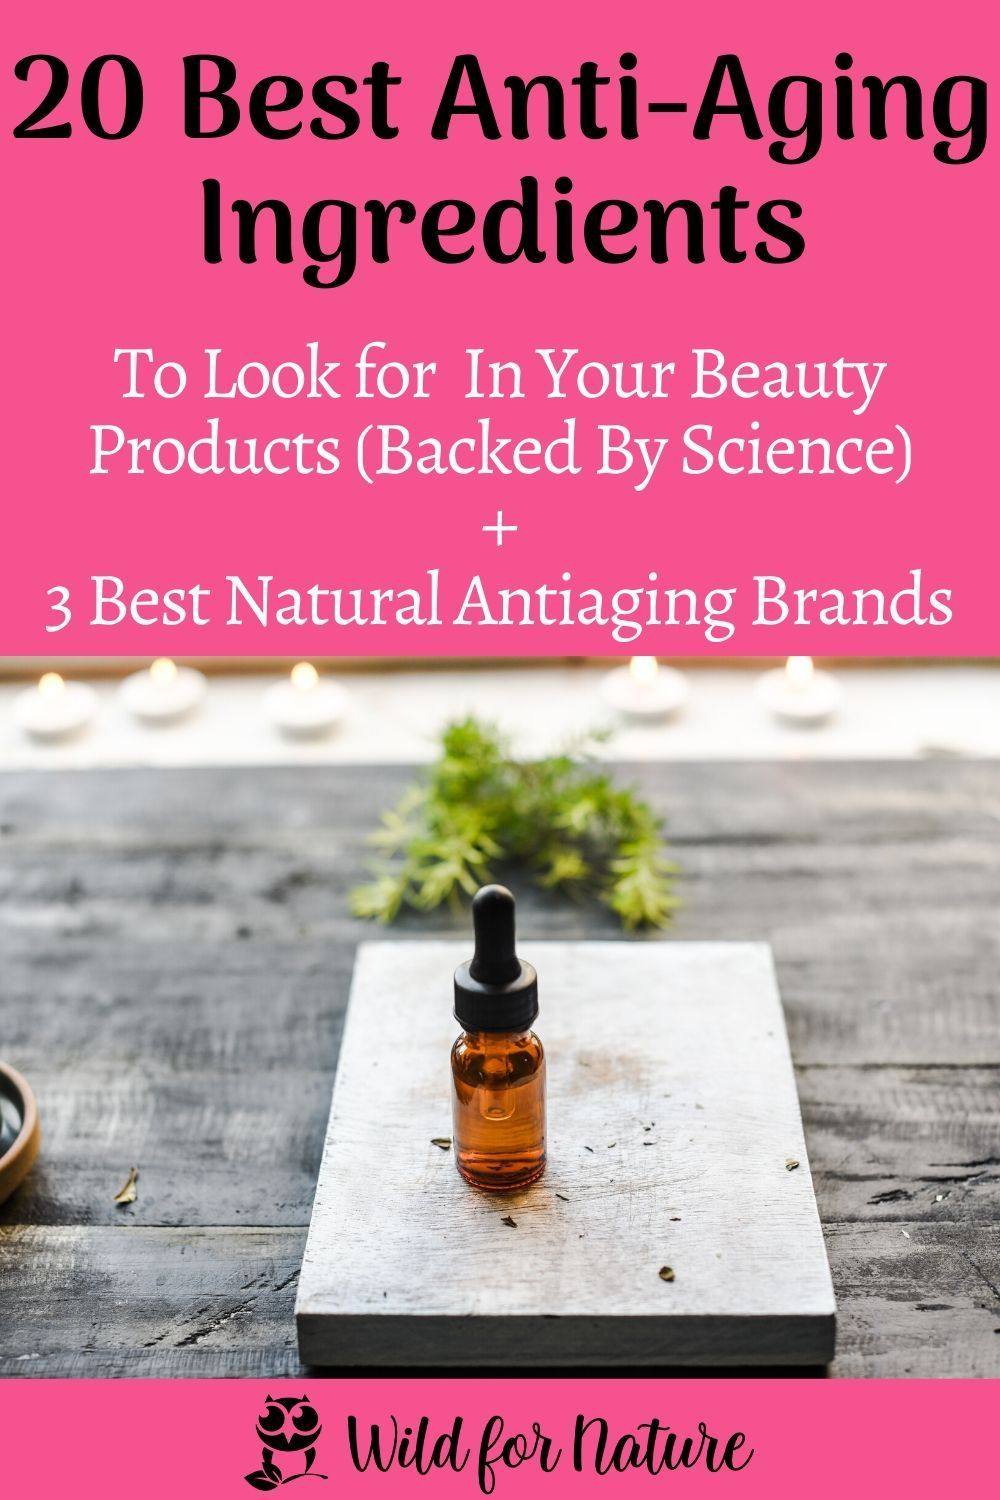 20 Best Anti Aging Skin Care Ingredients Backed By Science In 2020 Anti Aging Ingredients Best Anti Aging Anti Aging Skin Products